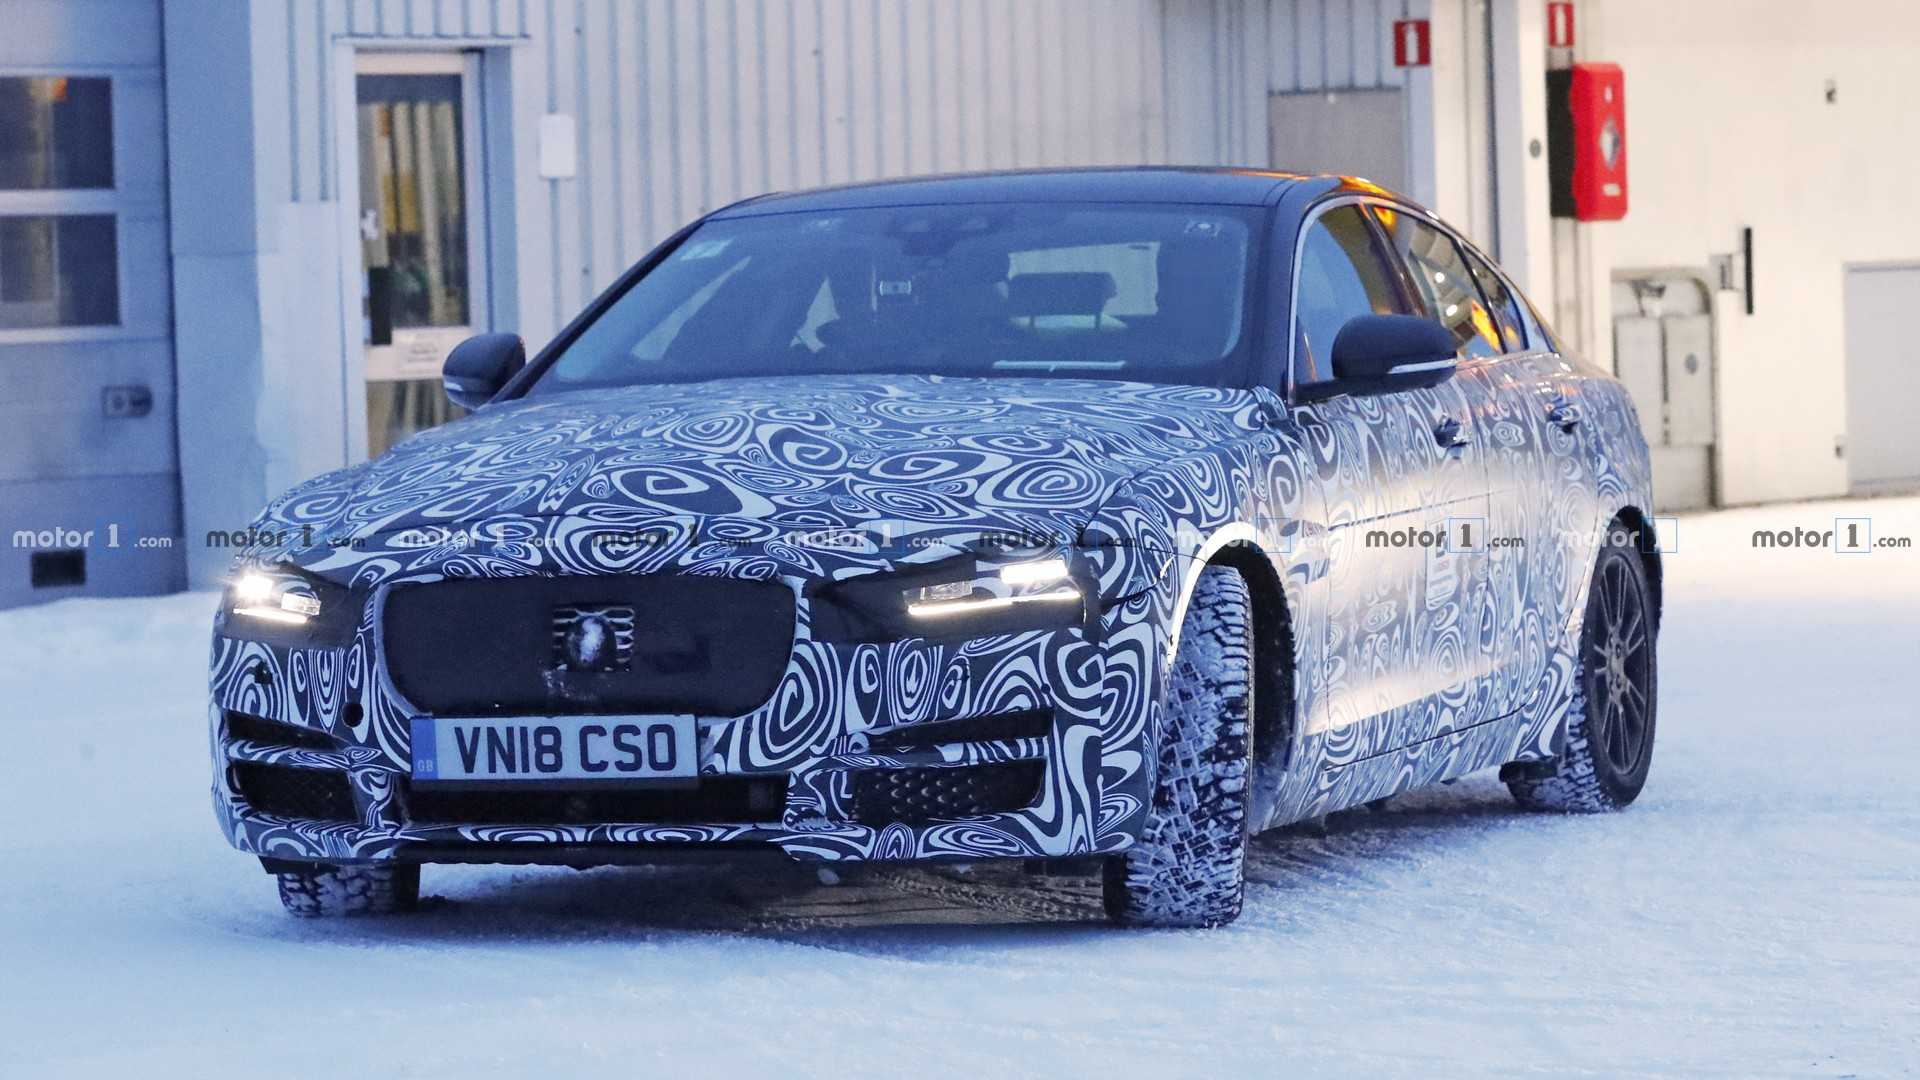 2020 Jaguar Xe Facelift Spotted Hiding Sleeker Headlights